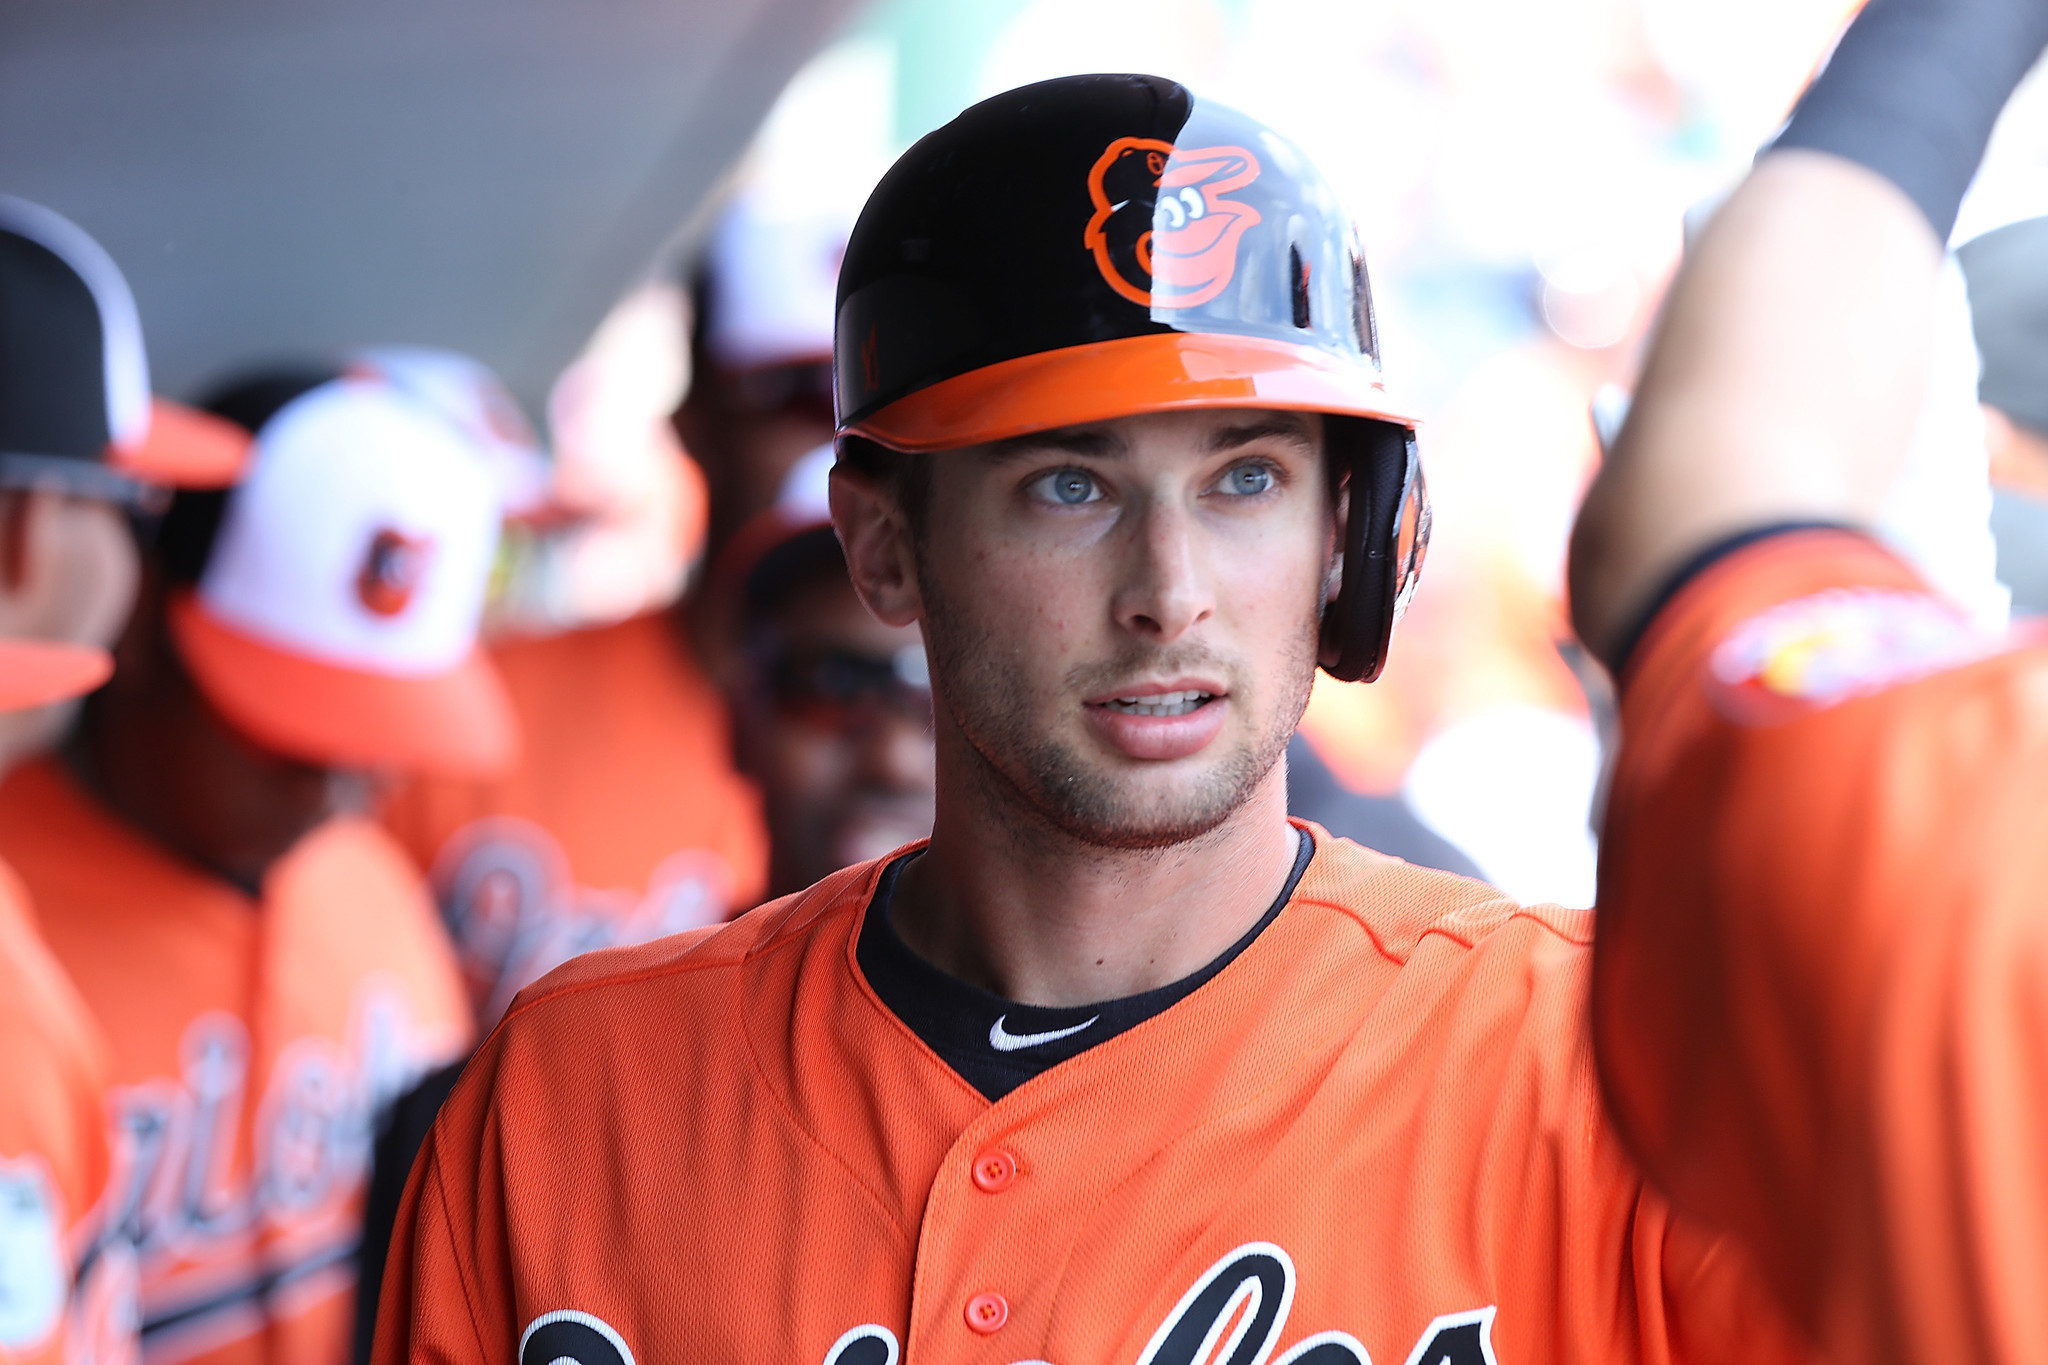 Bal-orioles-notes-activation-imminent-for-joey-rickard-routine-day-off-for-j-j-hardy-20170426